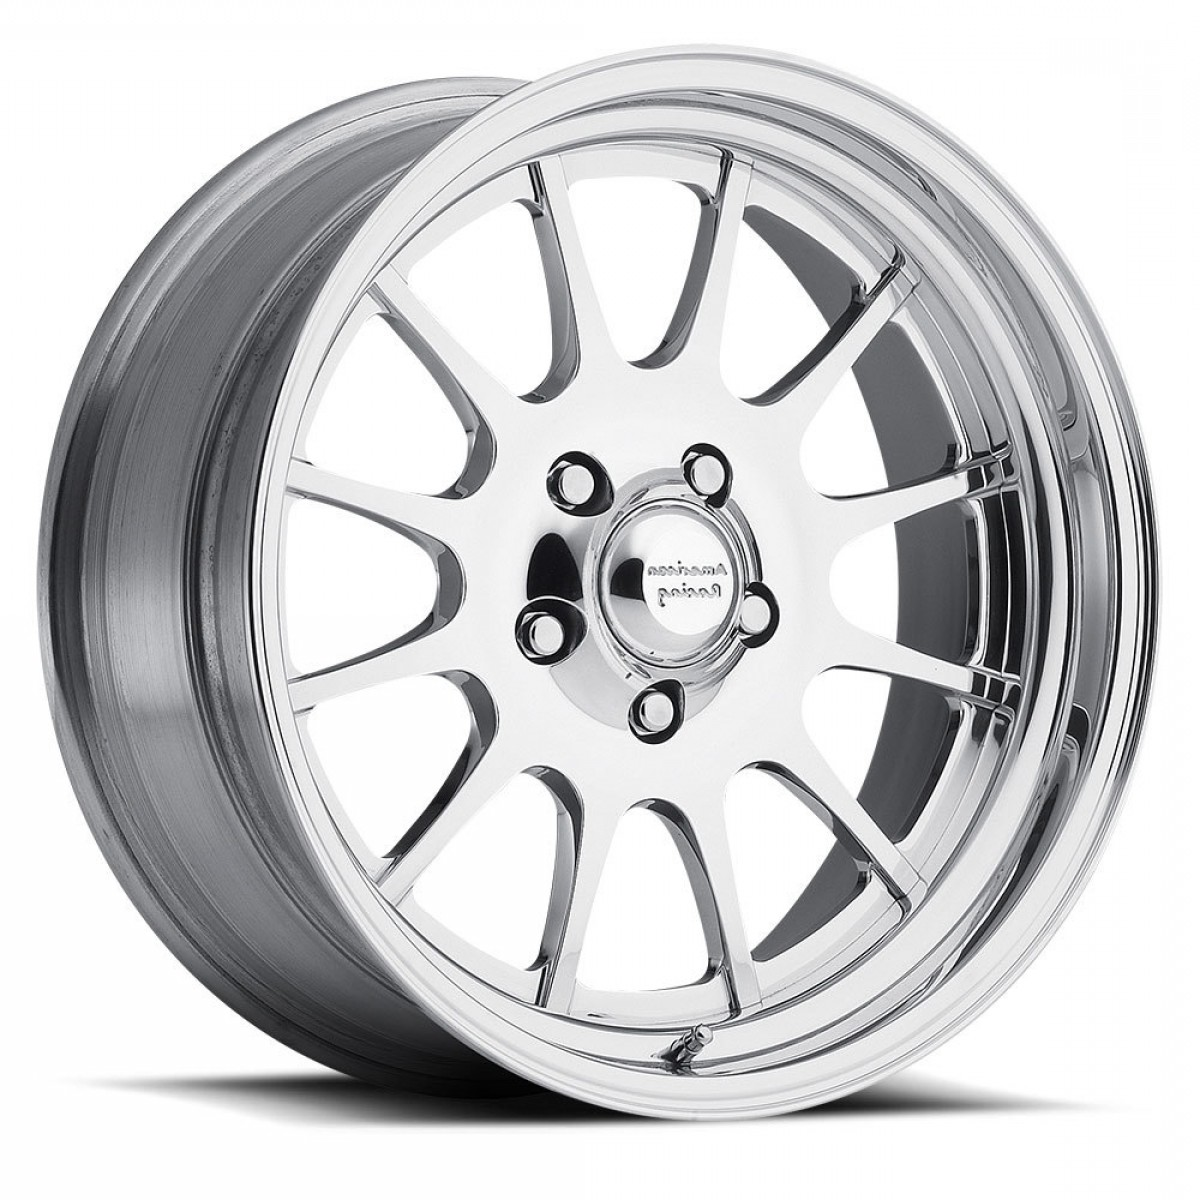 American Racing Vector Rims: American Racing Vector Vn Wheels Rims X Polished Blanks Custom Drilled Bolt Patterns Mm Offset Vnxx